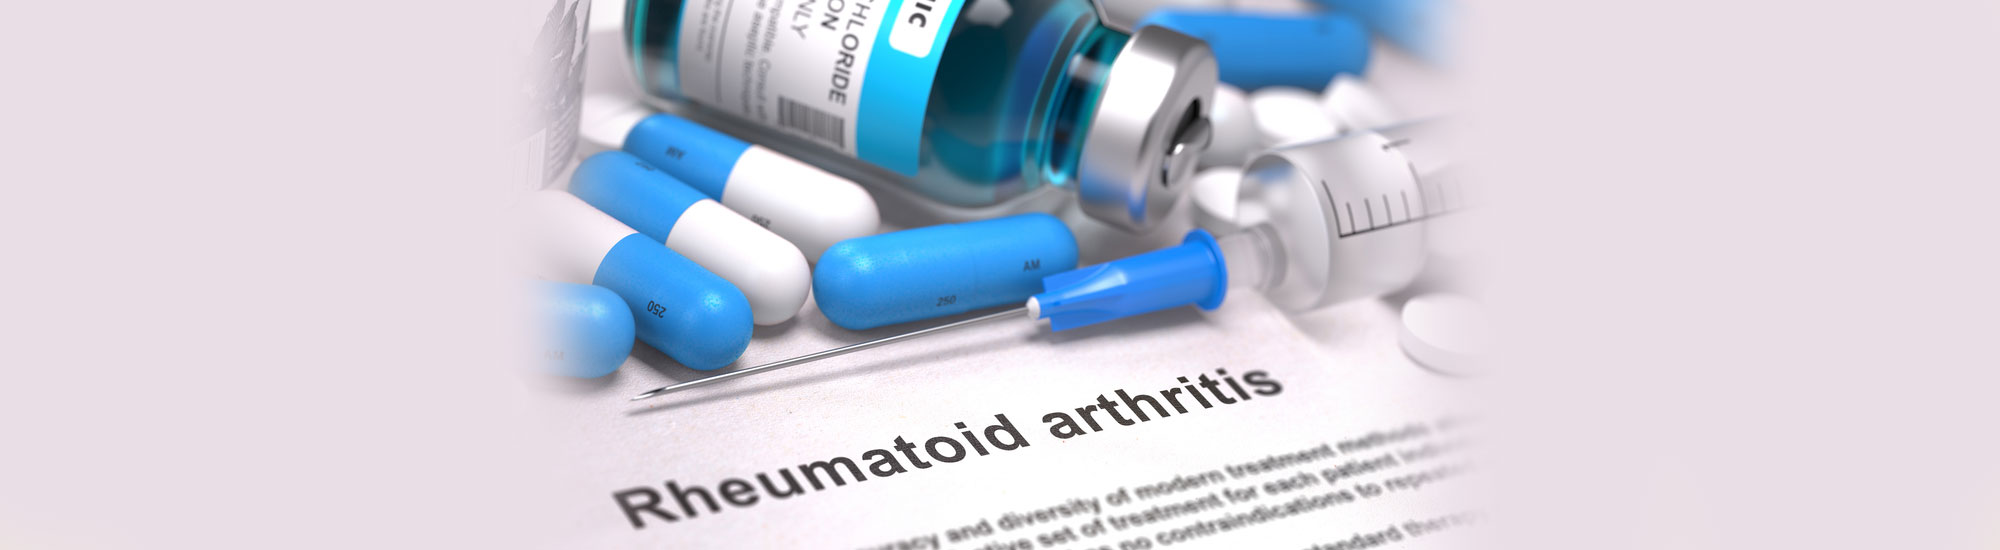 Ayurvedic treatment for Rheumatoid arthritis Diagnosis